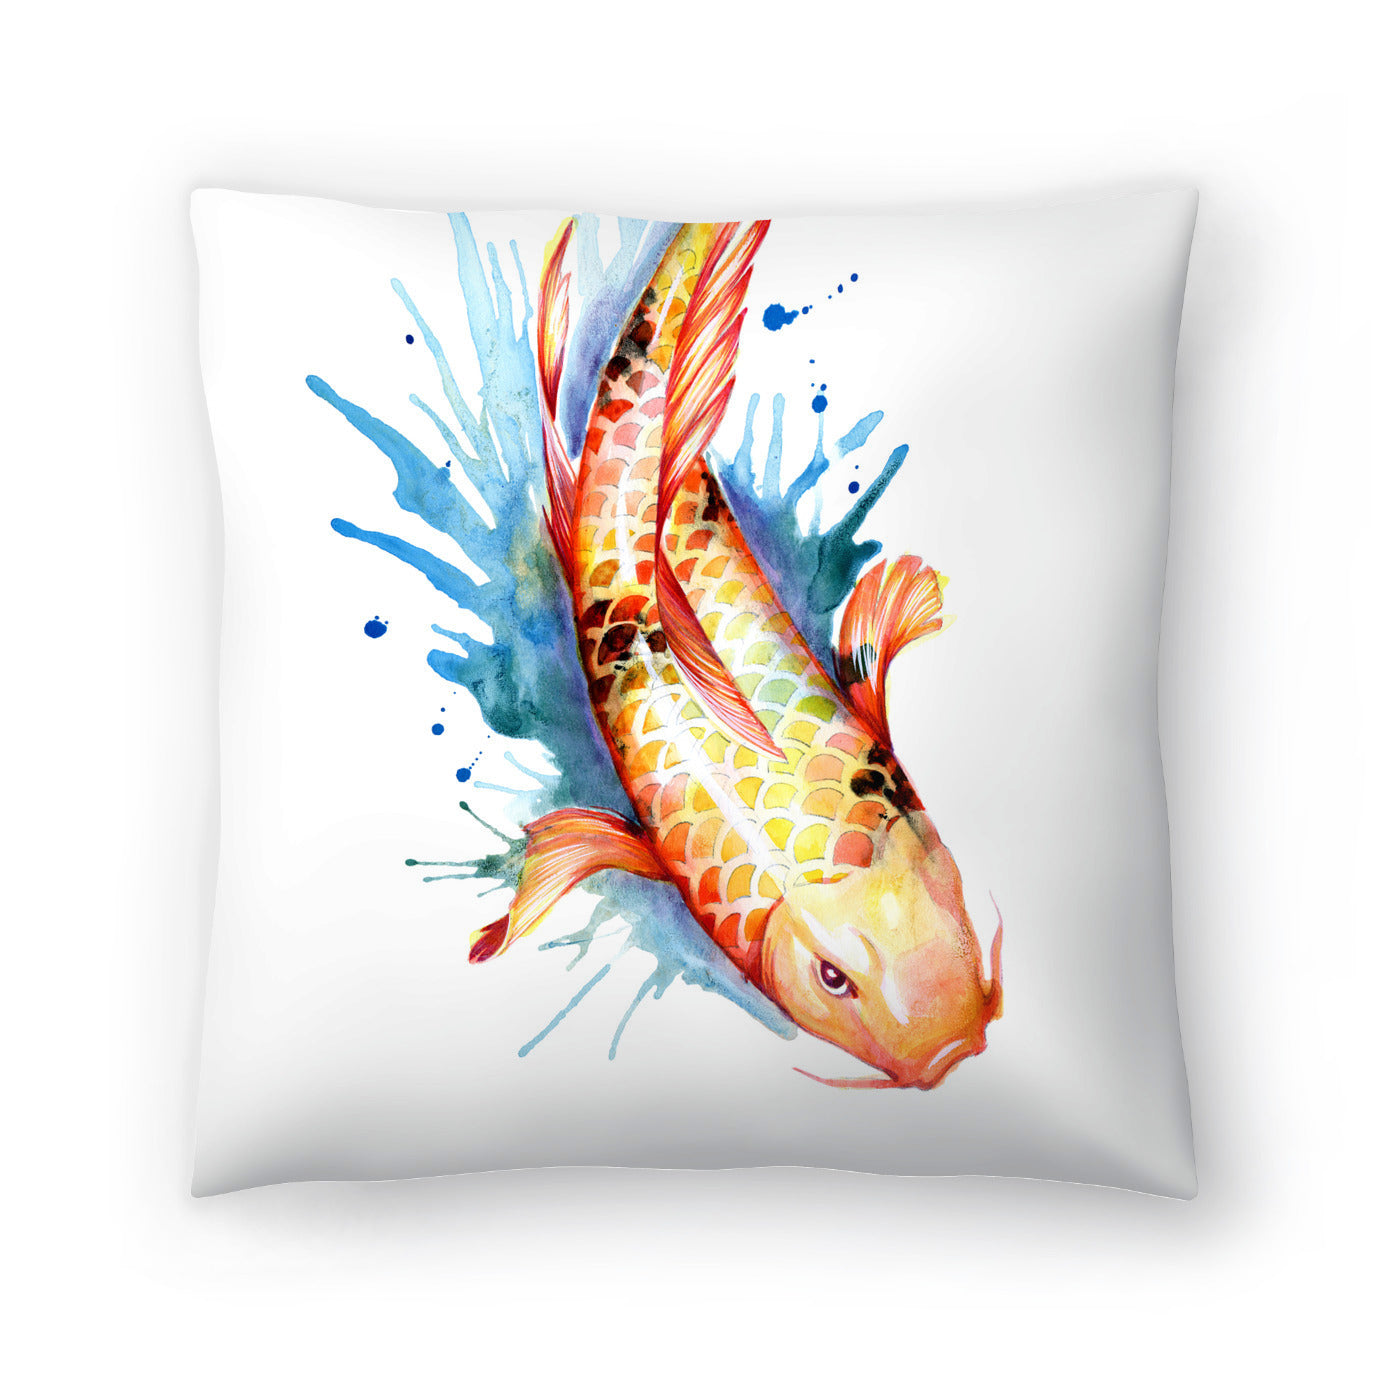 Koi Fish 2 by Sam Nagel Decorative Pillow - Decorative Pillow - Americanflat